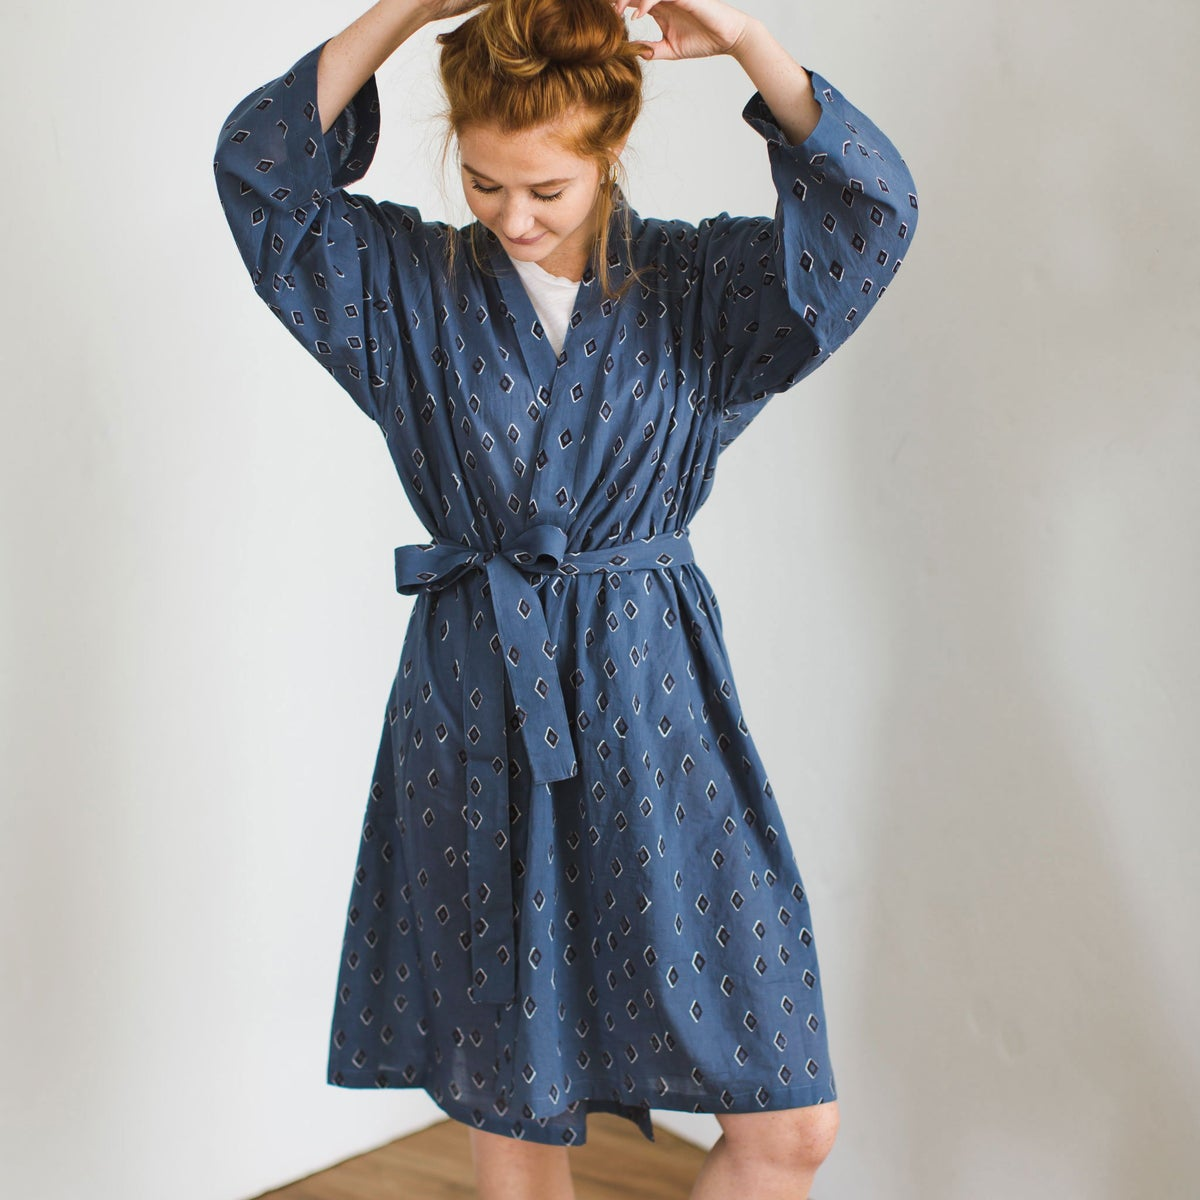 Image of Cotton Robe - Tiz Ocean Block Print